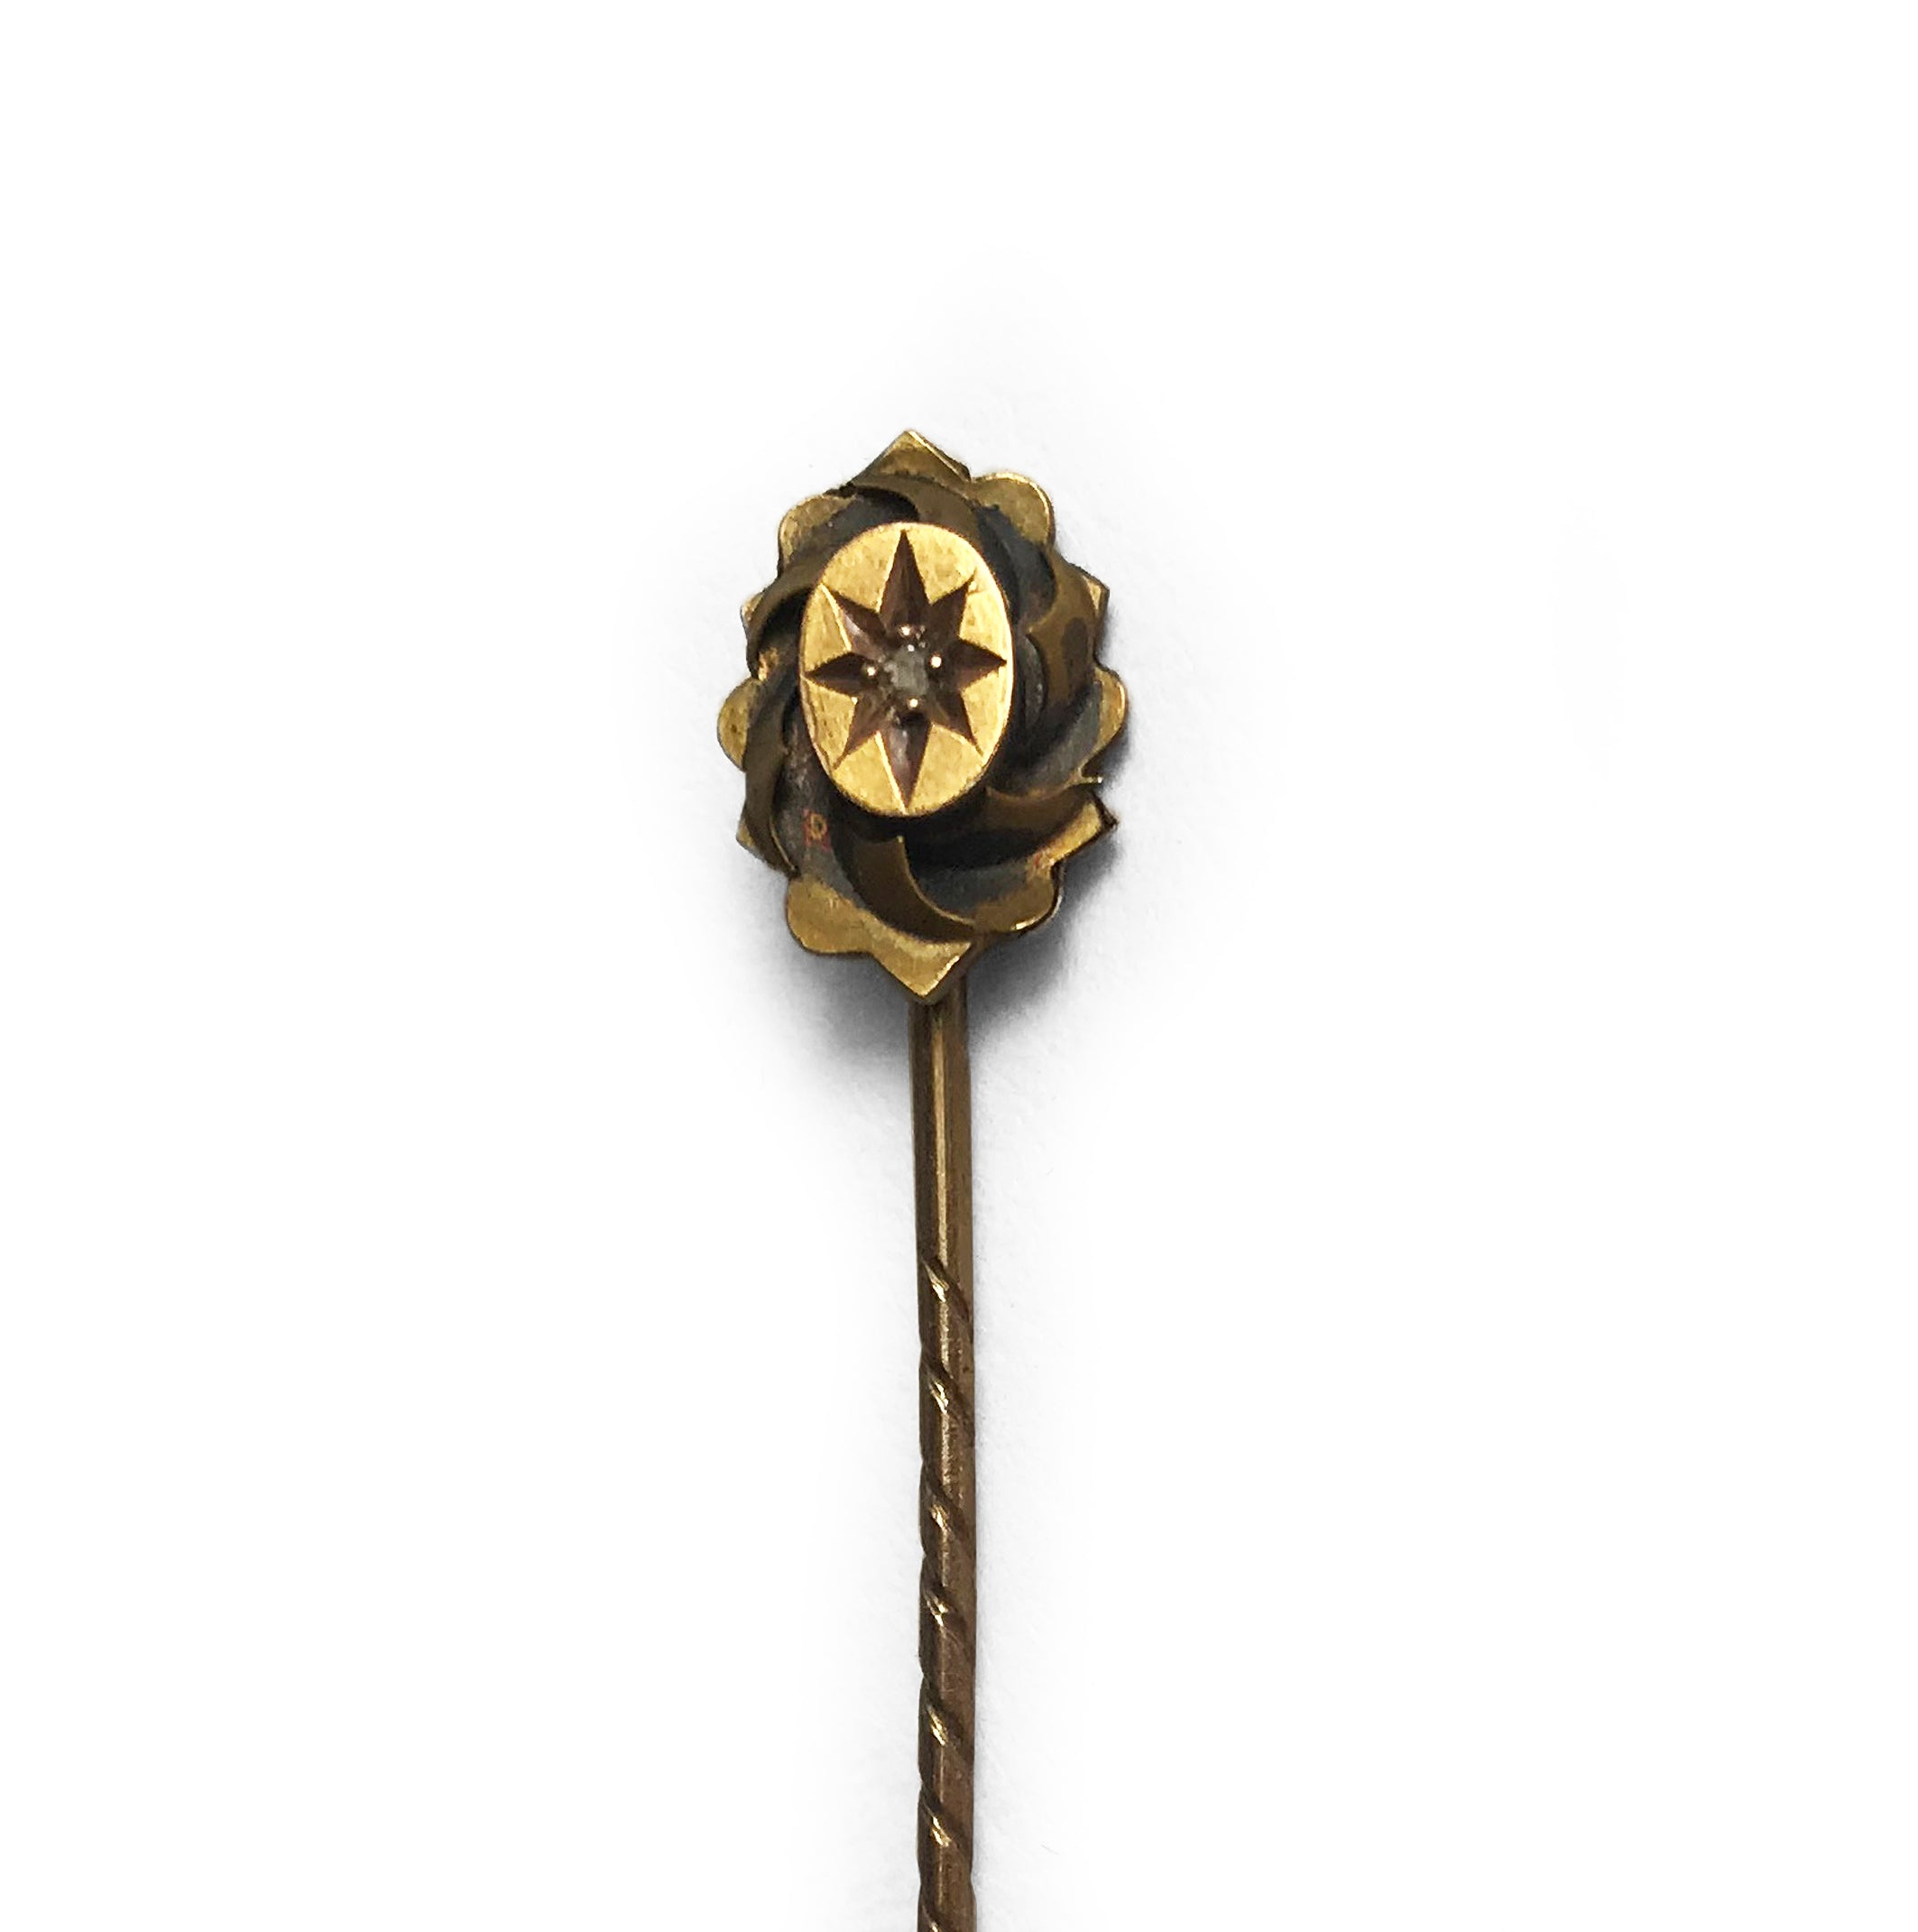 Smart Edwardian 15 CT gold tie pin with small inset diamond - SHOP NOW - www.intovintage.co.uk